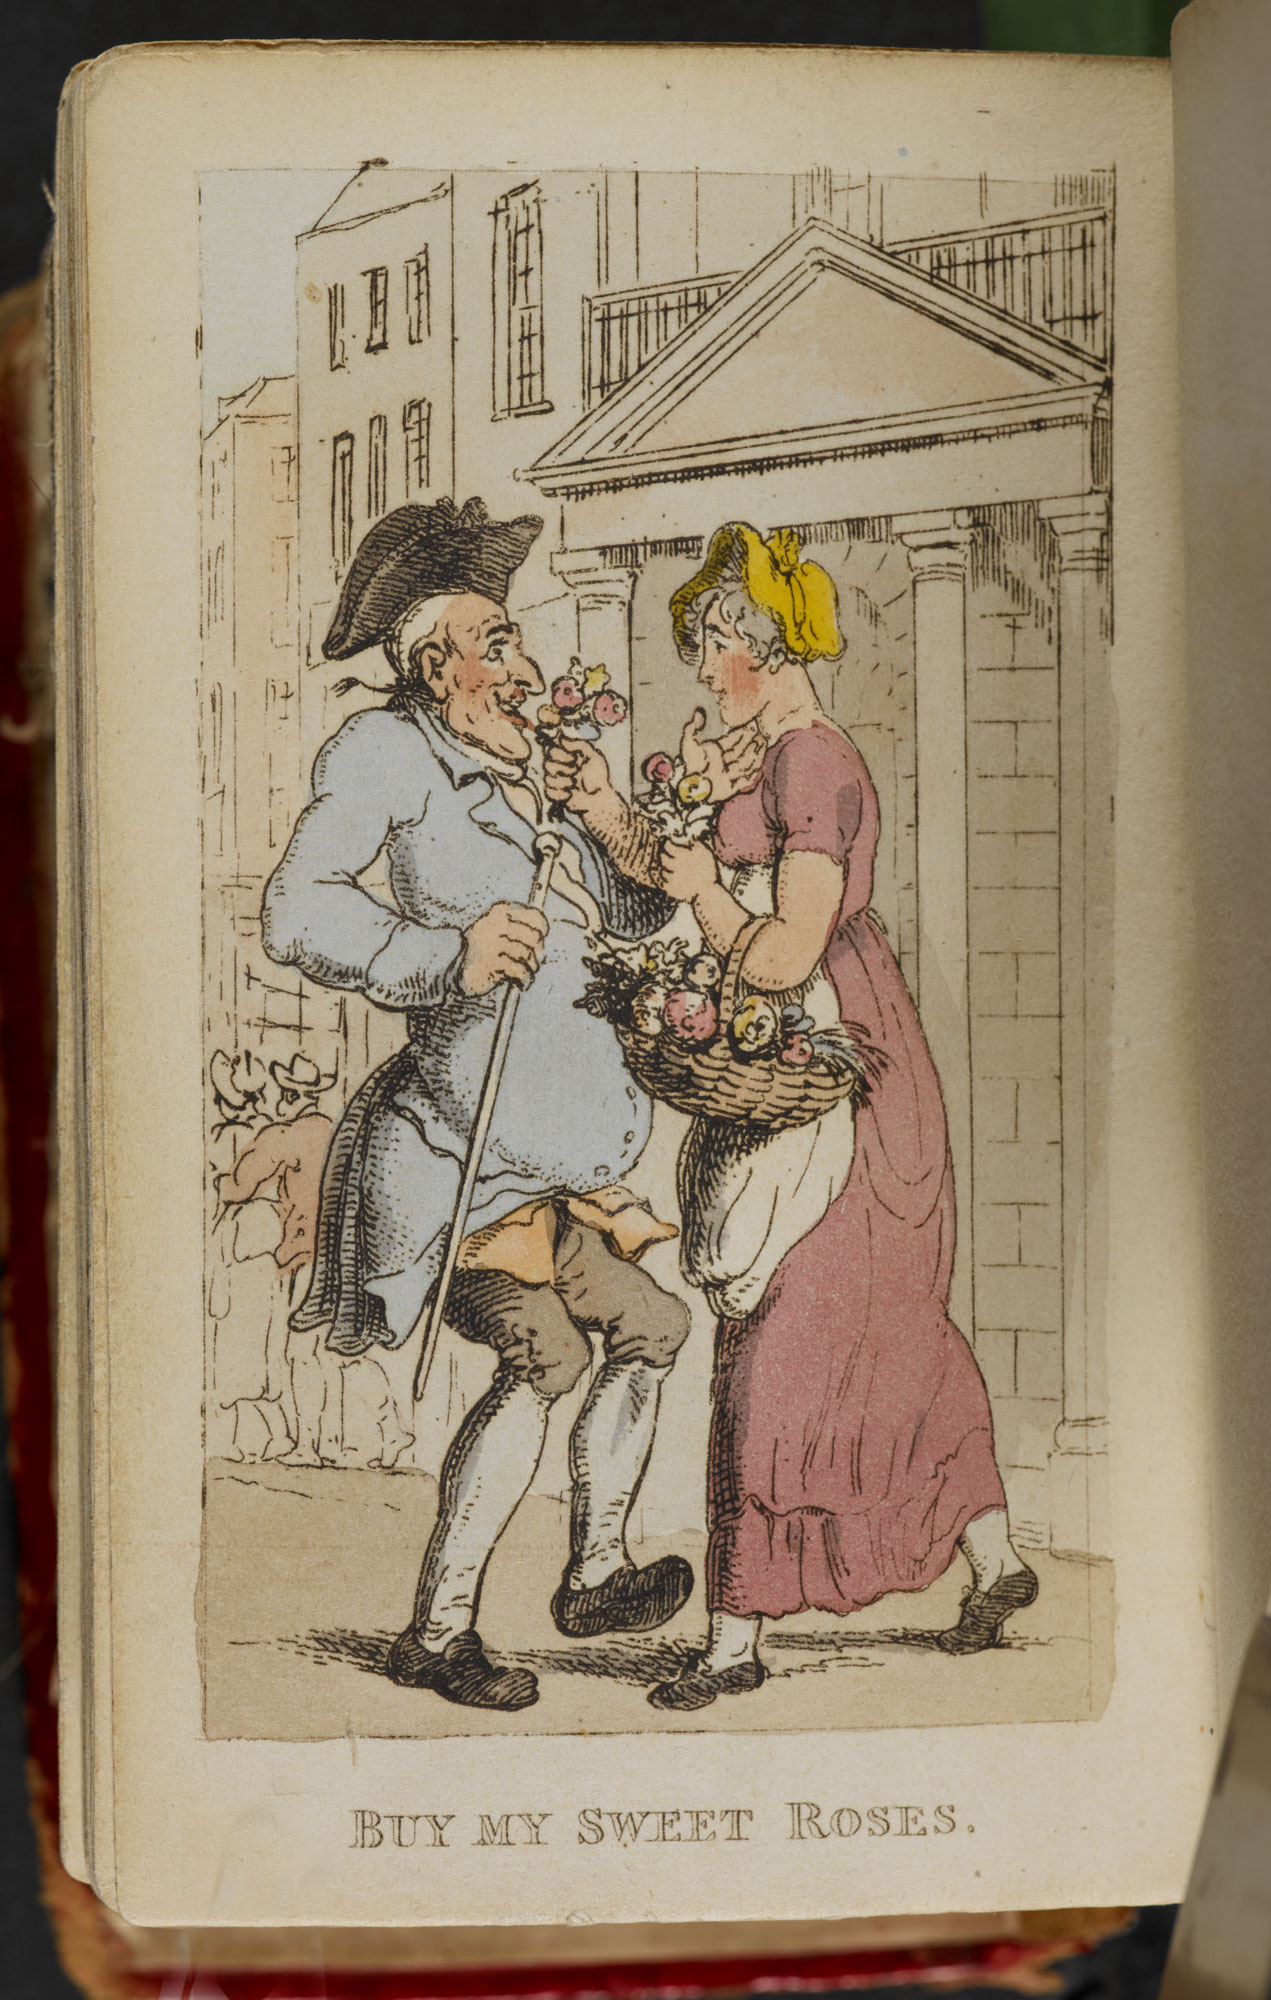 Rowlandson's Characteristic Sketches of the Lower Orders [page: ['Buy my Sweet Roses']]